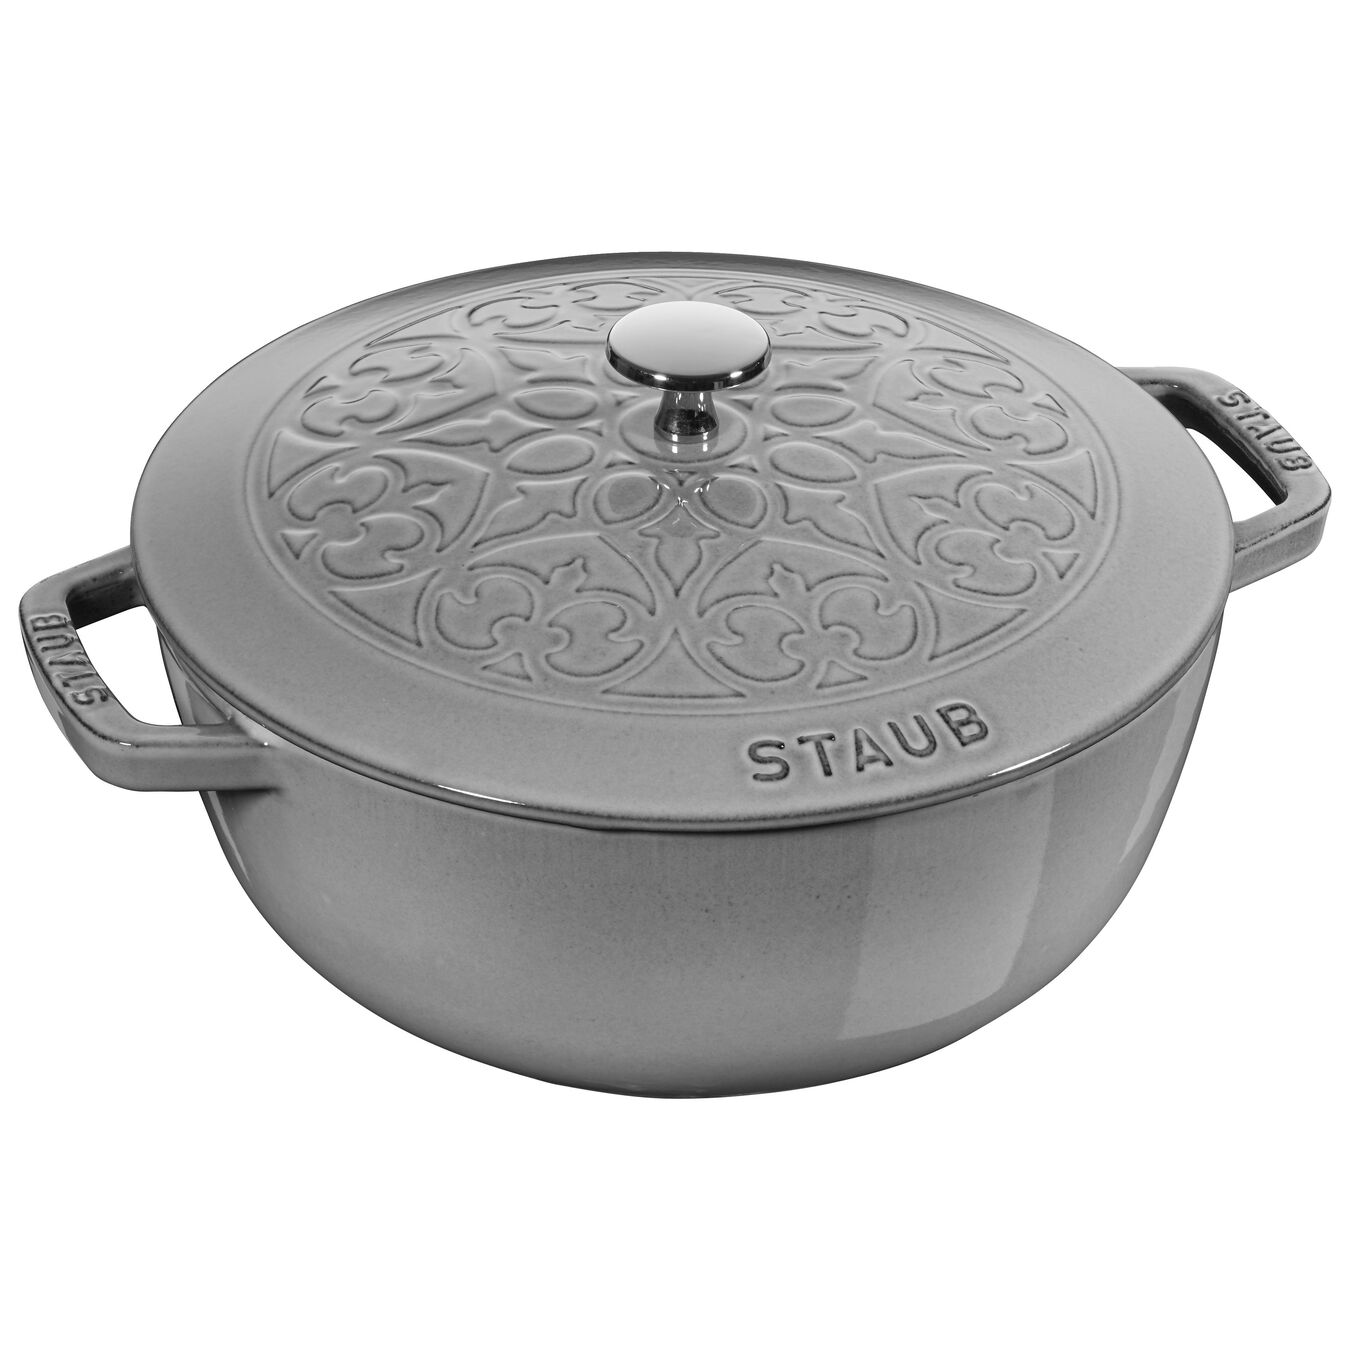 5 l round French oven, lily decal, graphite-grey,,large 1